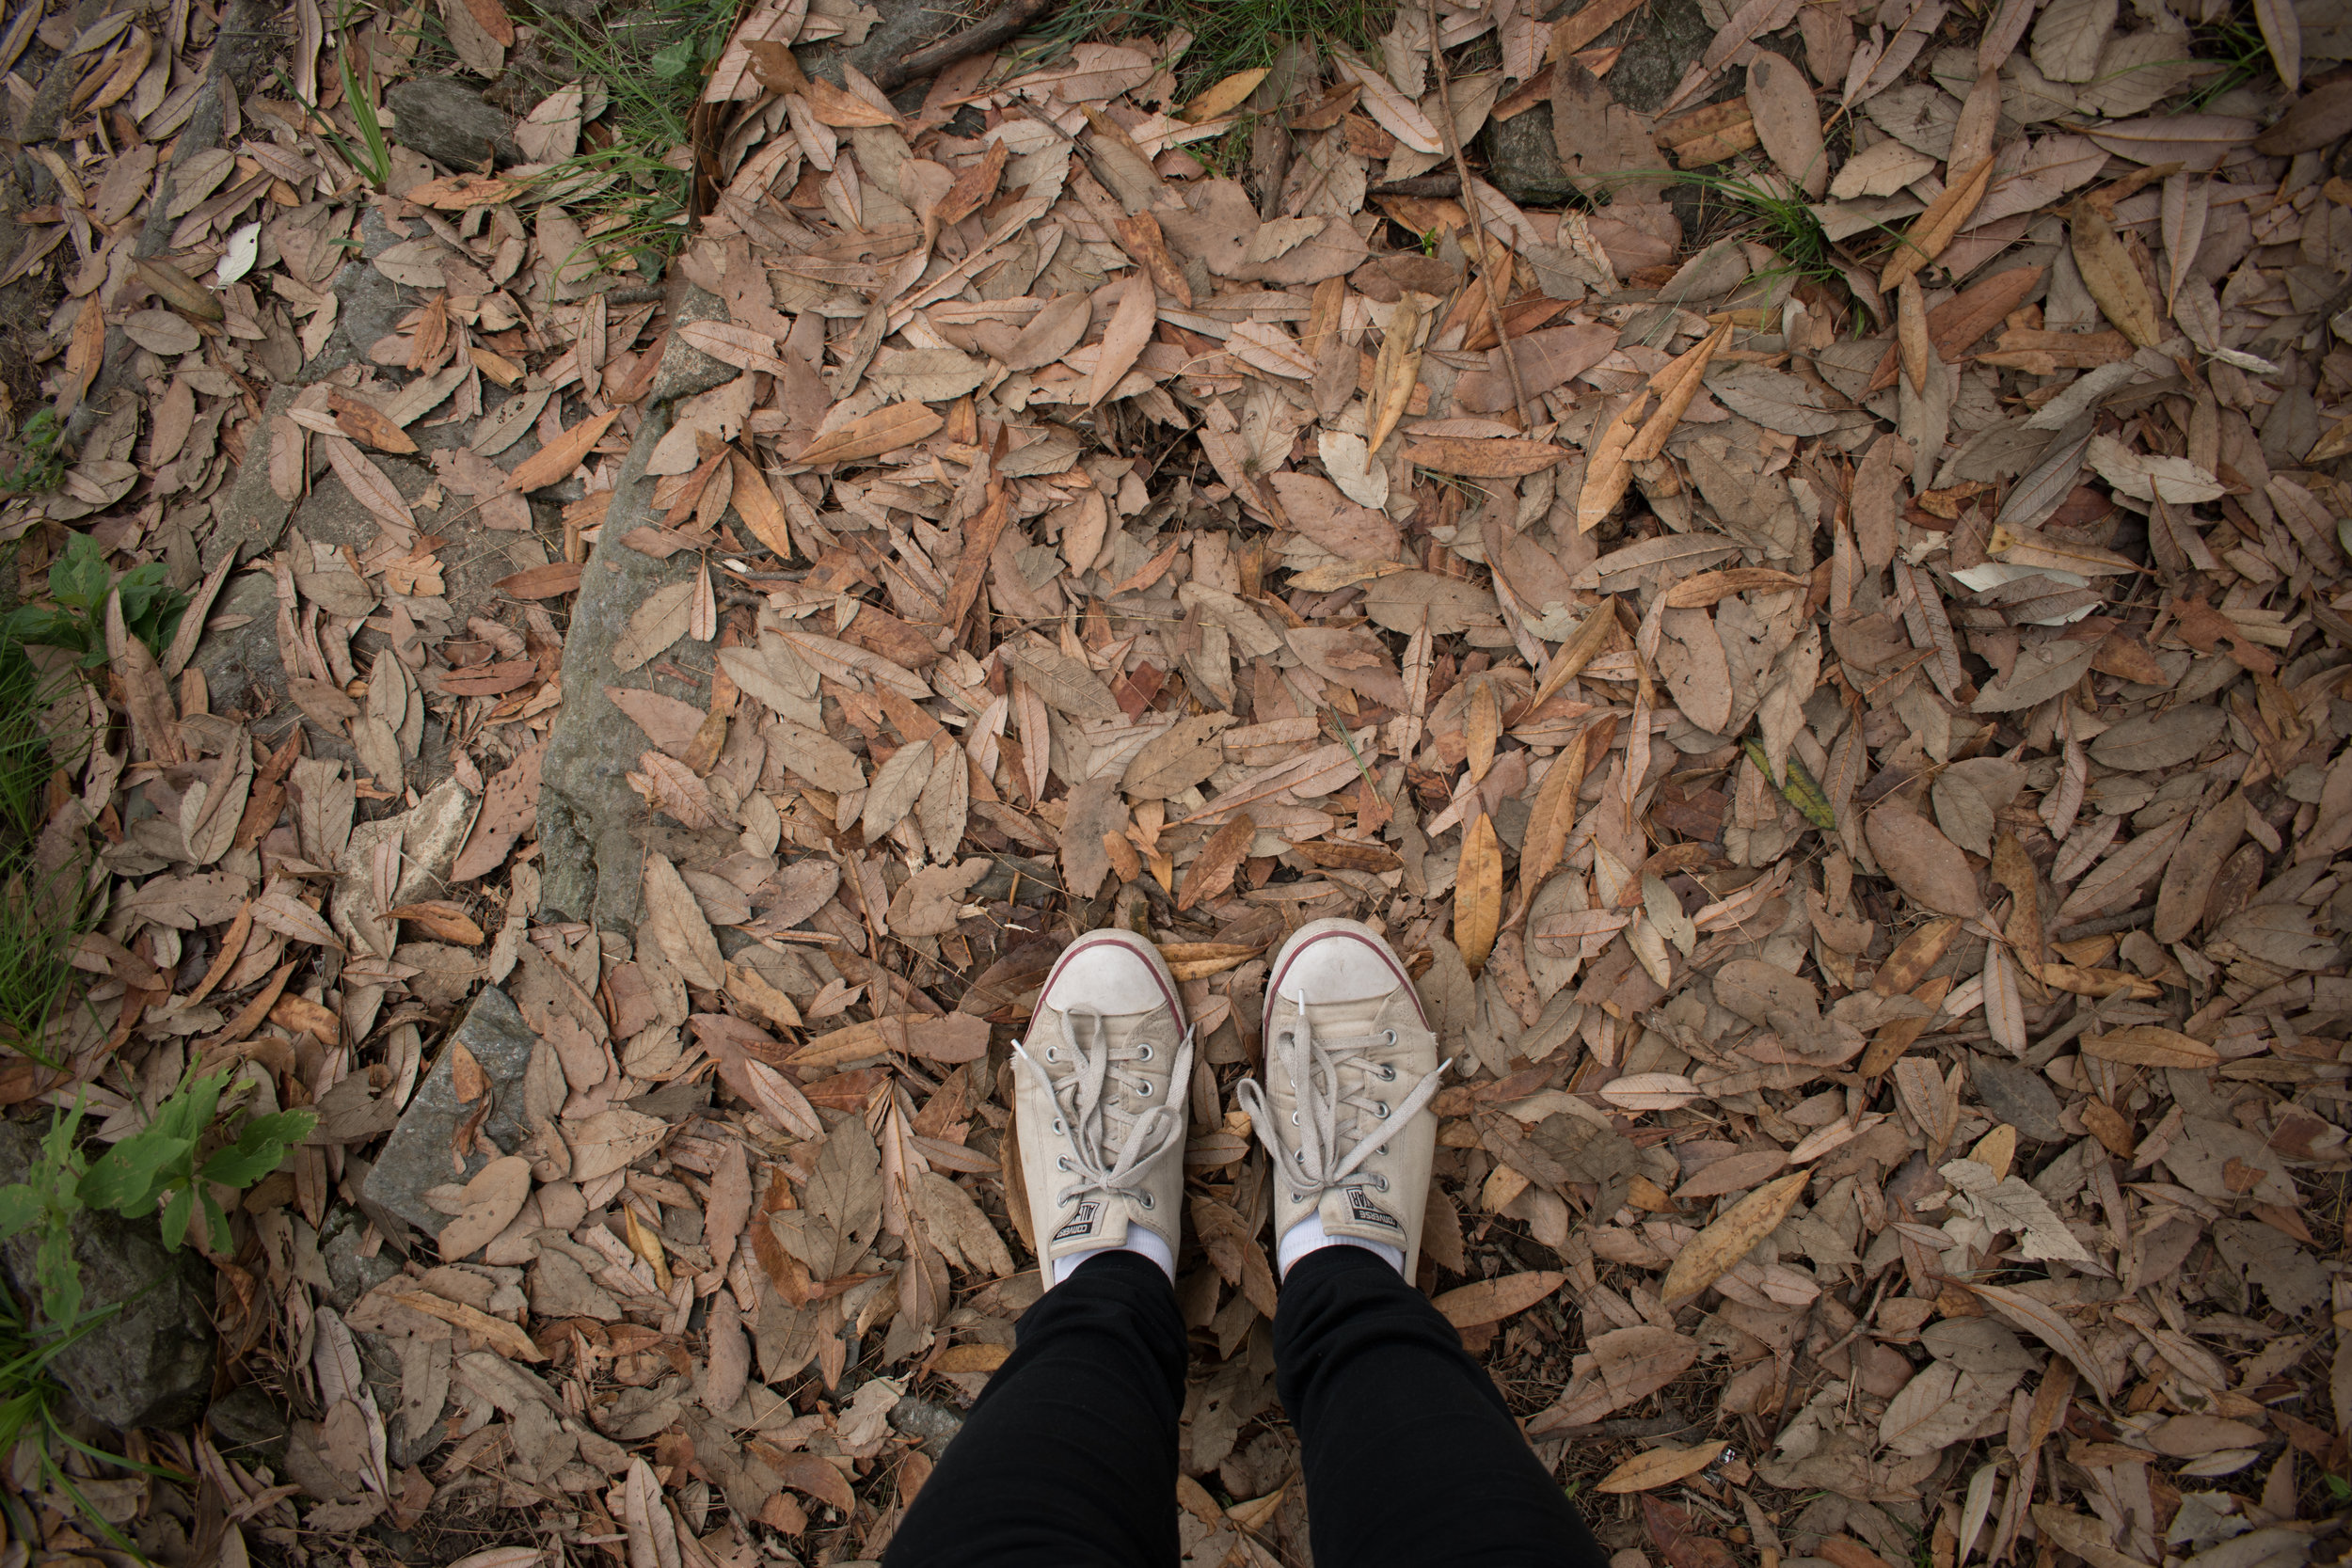 Battered Old Converse and Fallen Leaves At Viceroy Lodge in Shimla, India